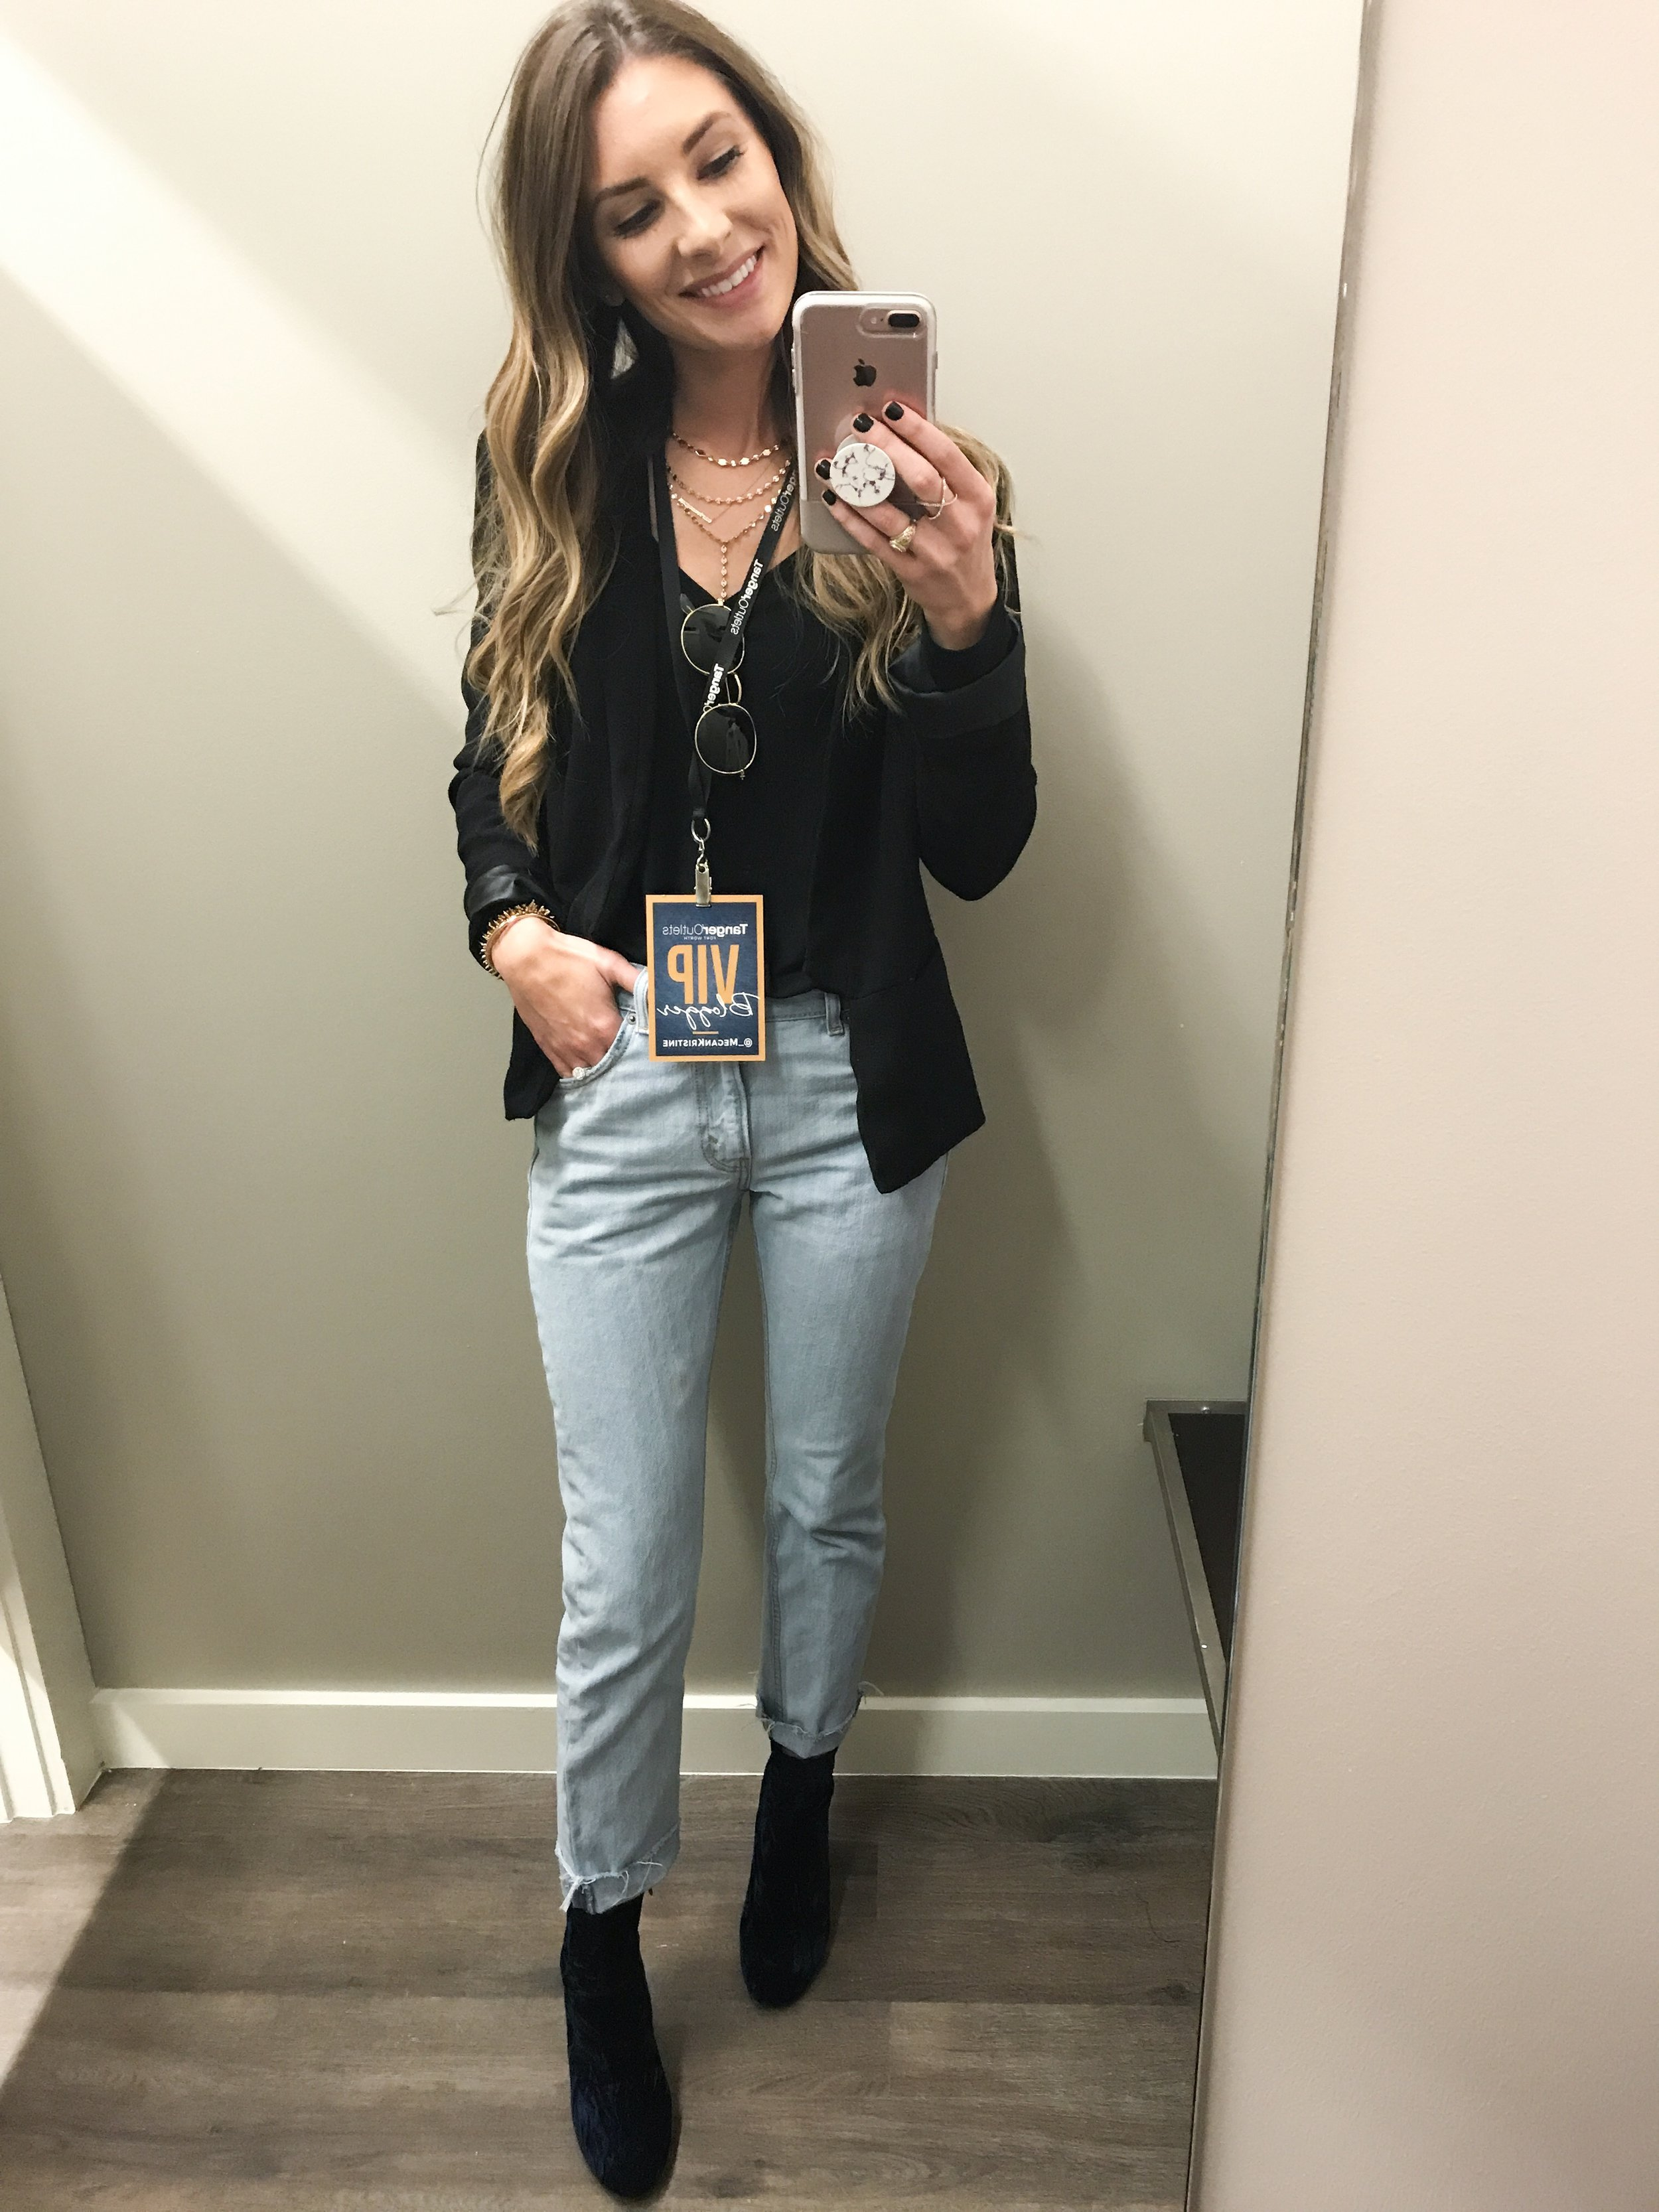 I'm sorry I only have a mirror selfie. I was unfortunately late to the event due to traffic, and I missed all the pictures and champagne.. (tear).